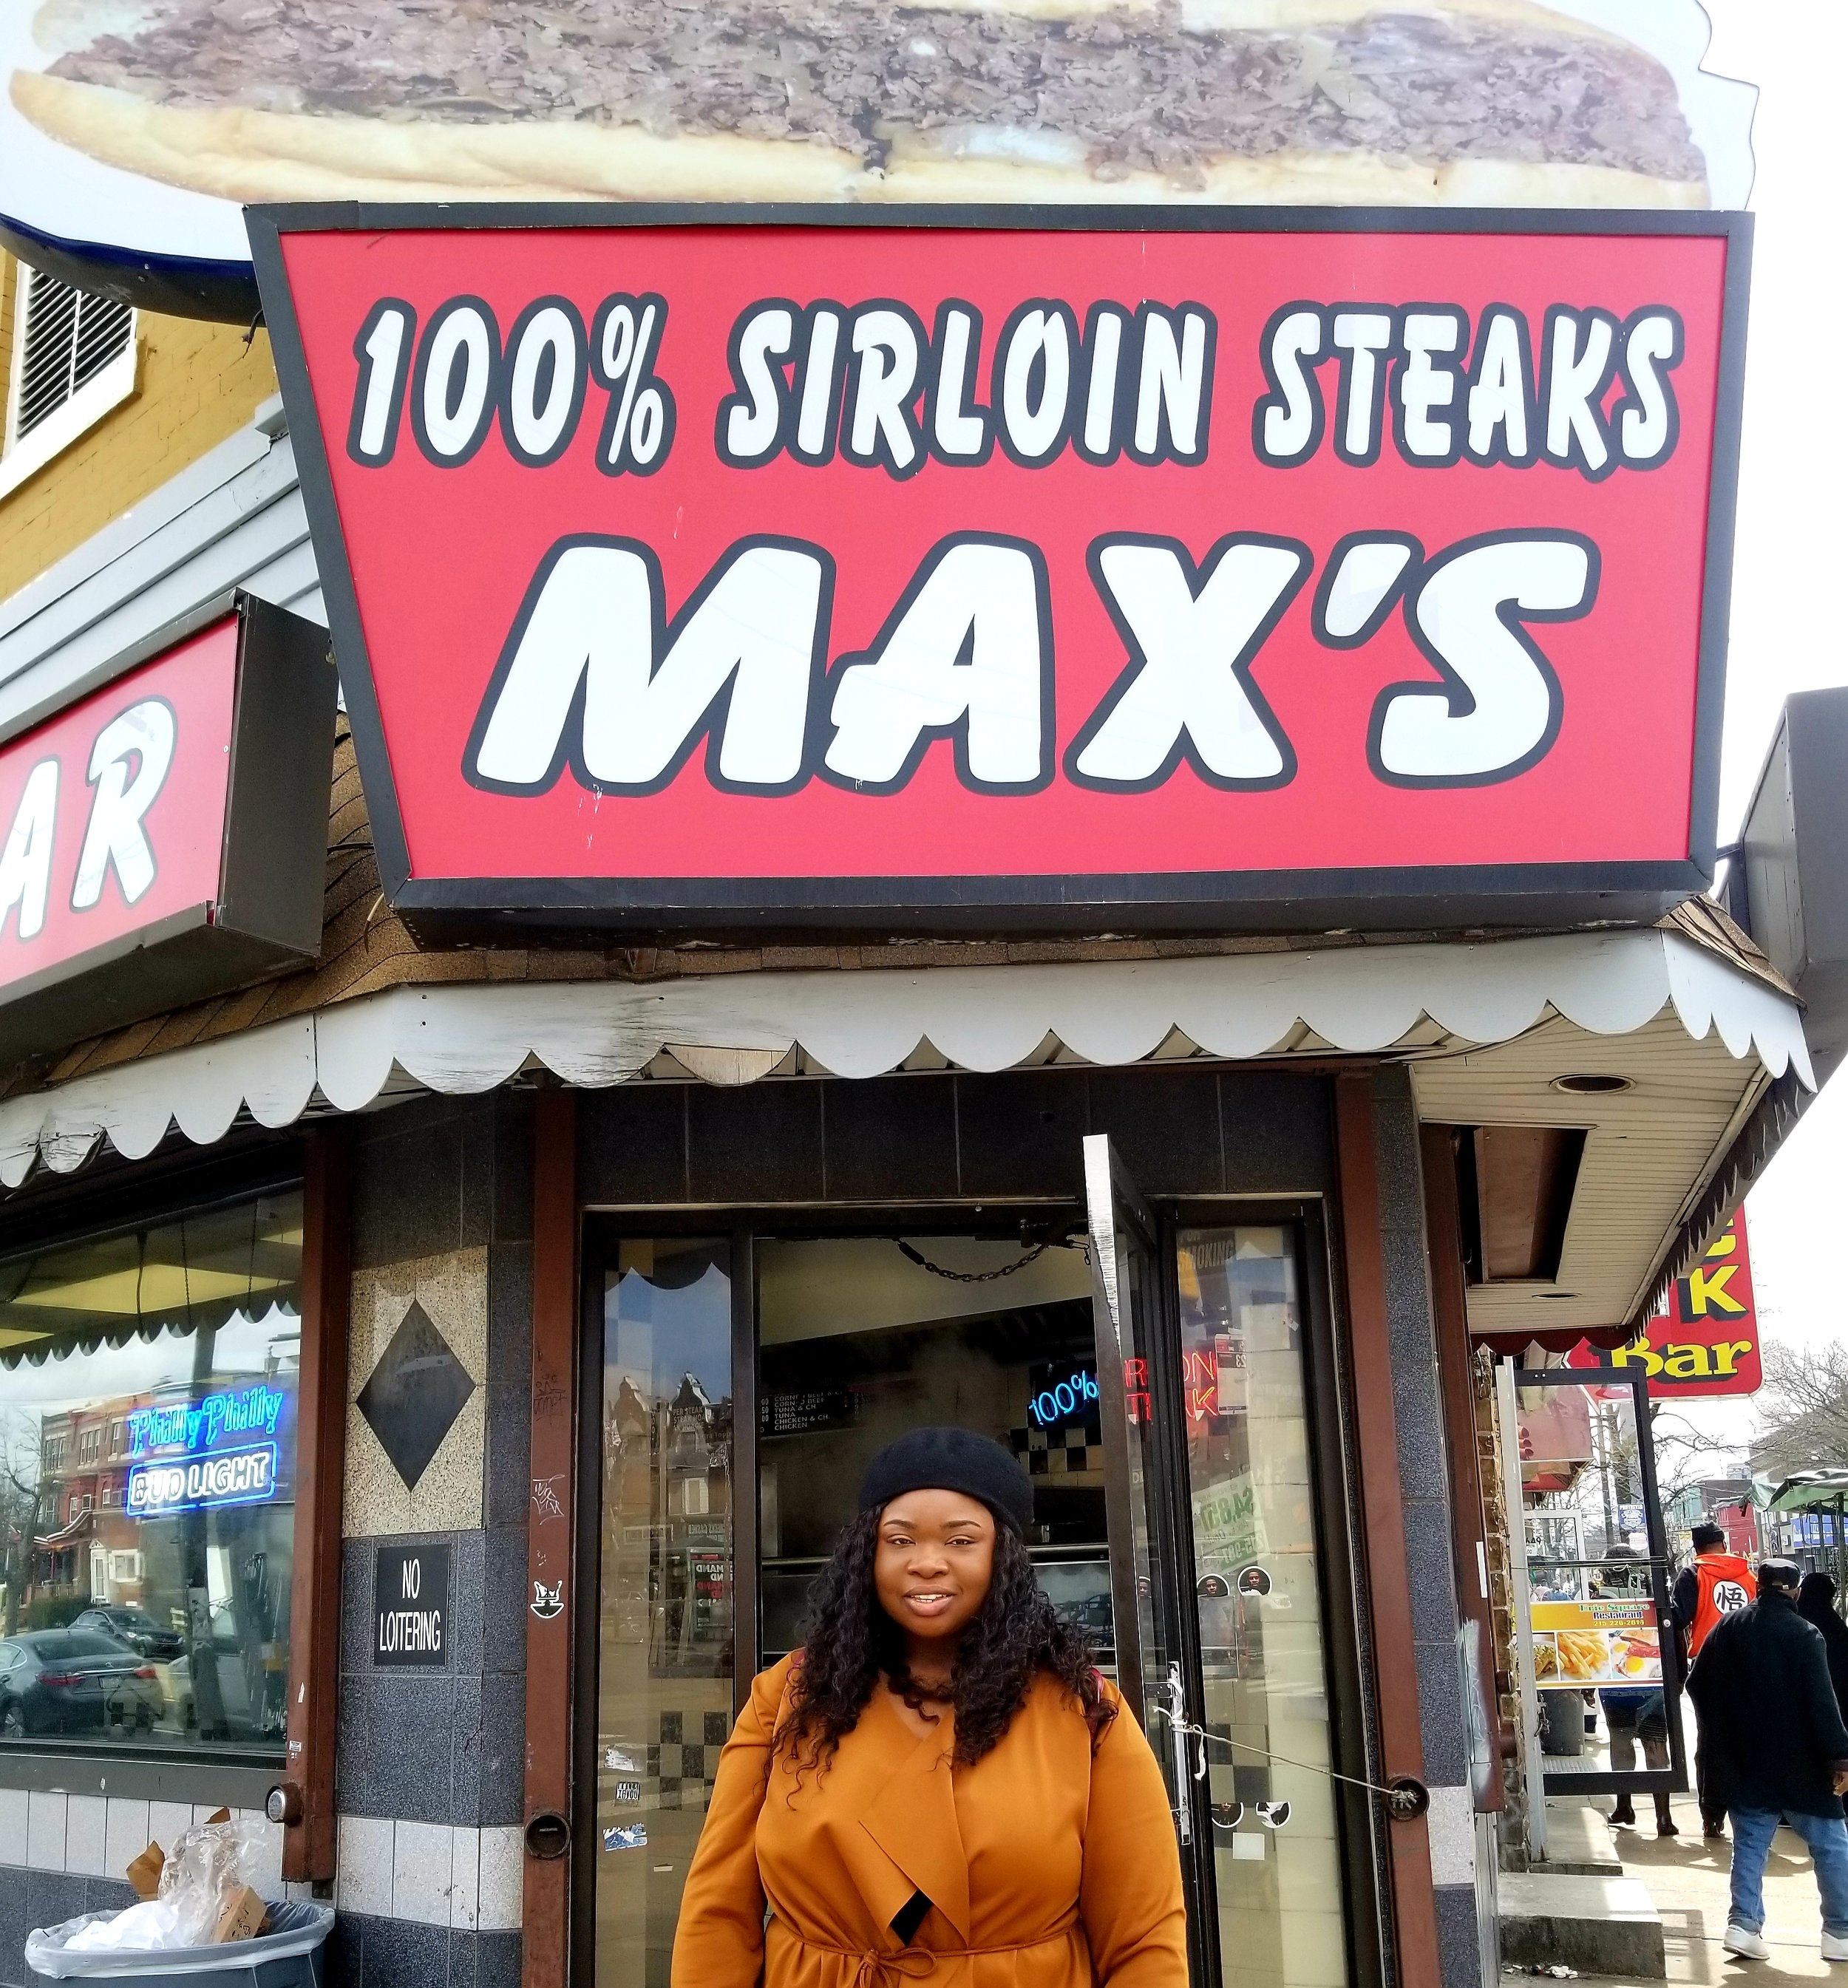 "After asking several Philadelphians where to get the best cheesesteak they all recommended Max's. We arrived around 12 pm for lunch and luckily there was a short line. Everyone was so friendly and it didn't take long for our cheesesteak to come out. I would recommend if you decide to go to stop by a corner store to get a drink. Max's only had beer options and a random grape juice in the back. Make sure you order it ""Homie Style"", still not sure what that is but all of the locals were ordering it. Max's is cash only."